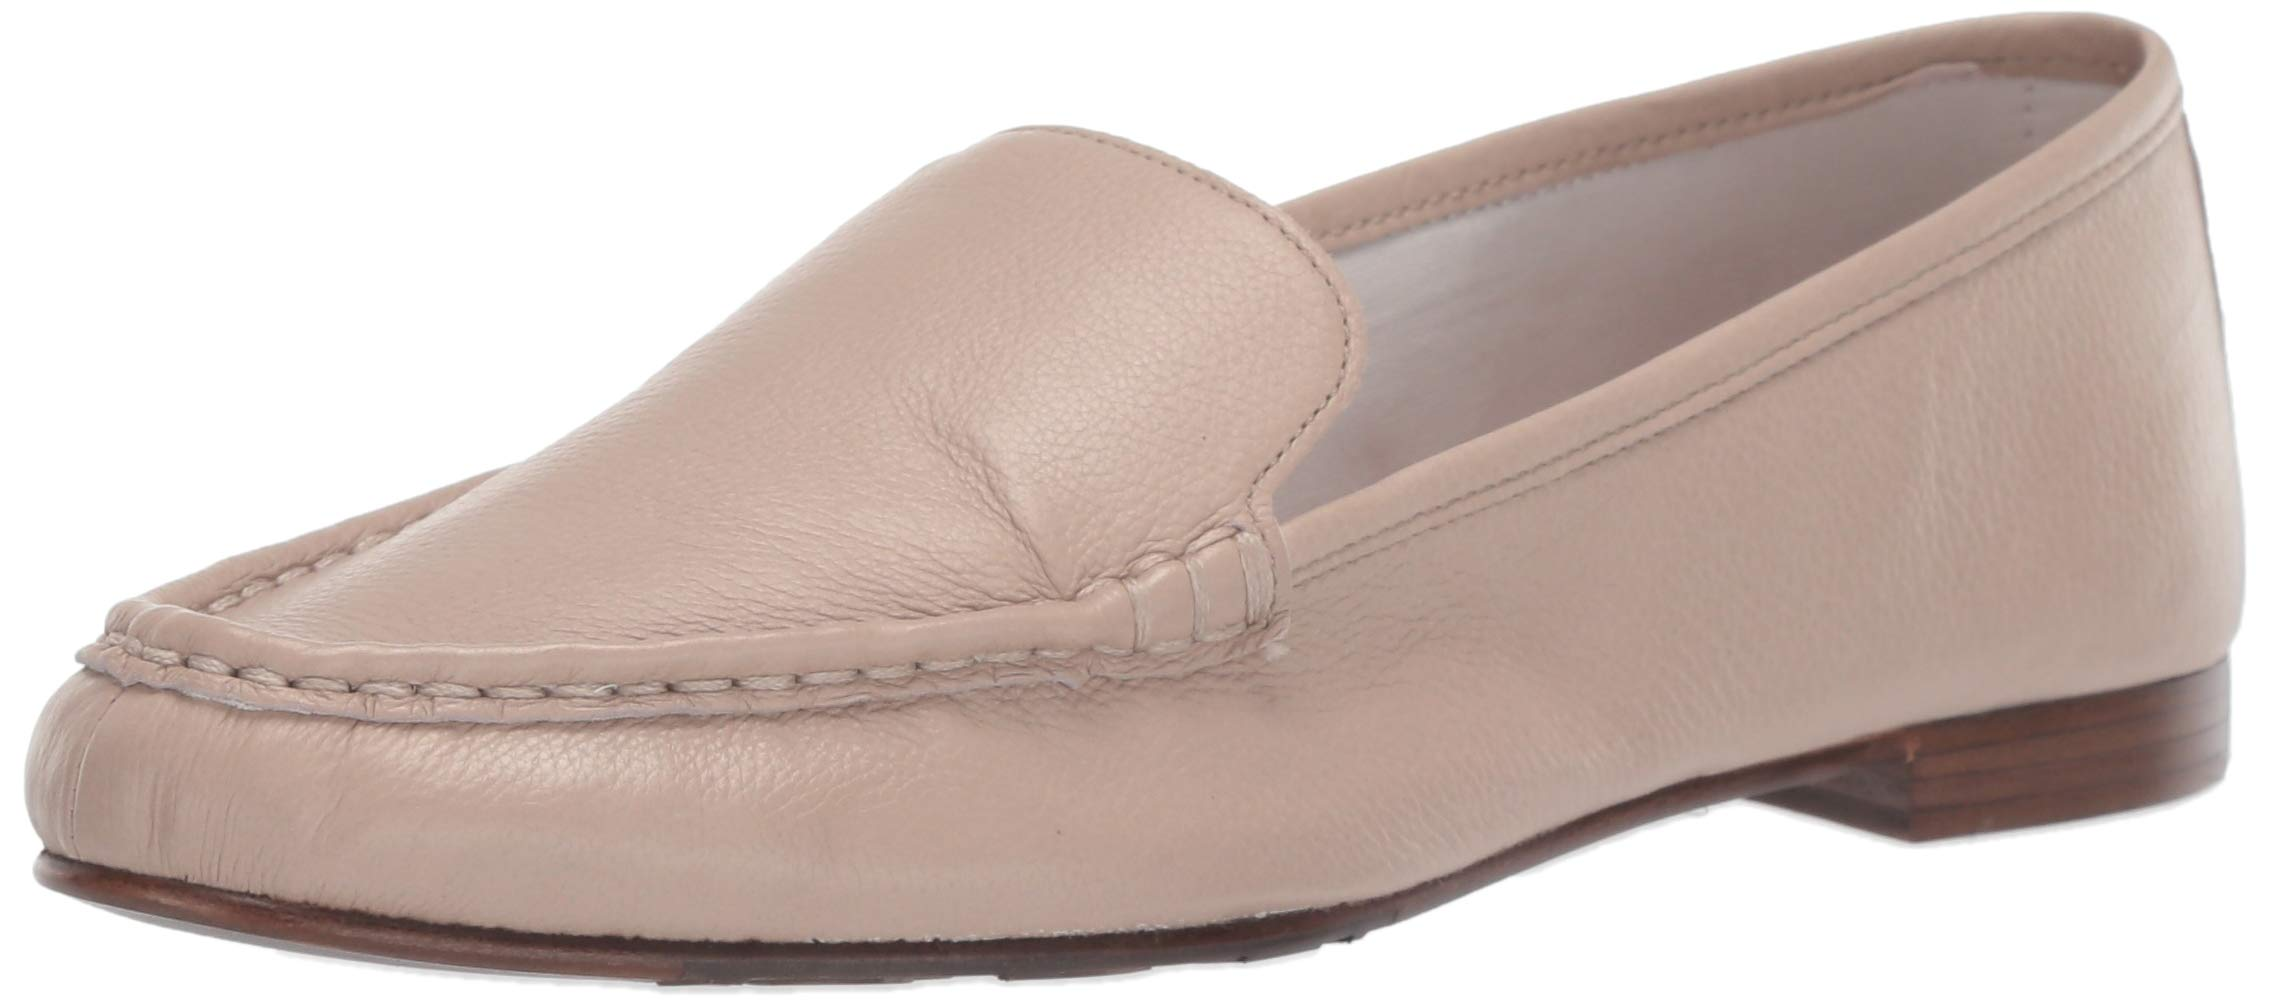 Taryn Rose Women's Diana Loafer, Taupe, 10 M Medium US by Taryn Rose